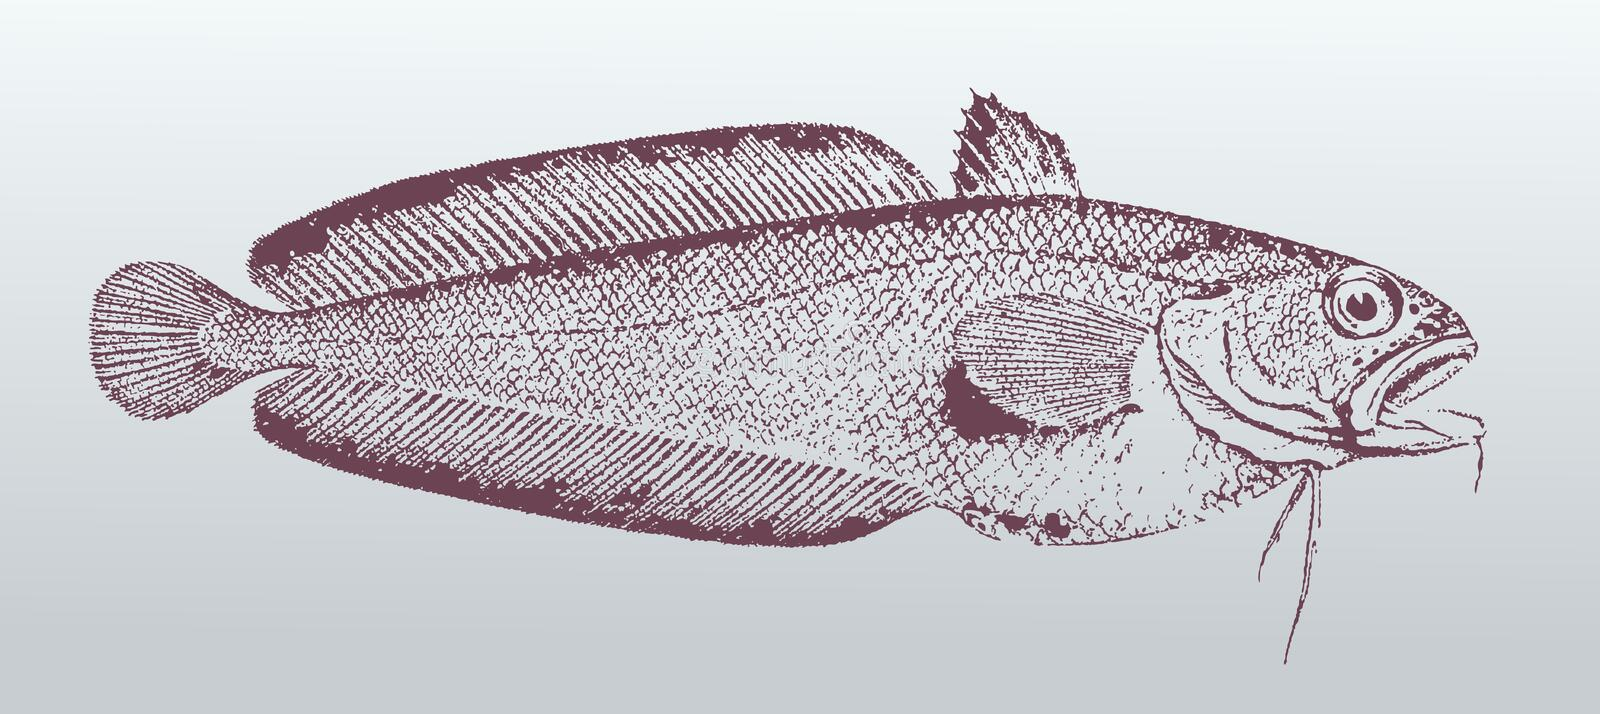 Red cod or northern codling pseudophycis breviuscula, a fish from australia in profile view. Illustration after a vintage lithography from the 19th century vector illustration